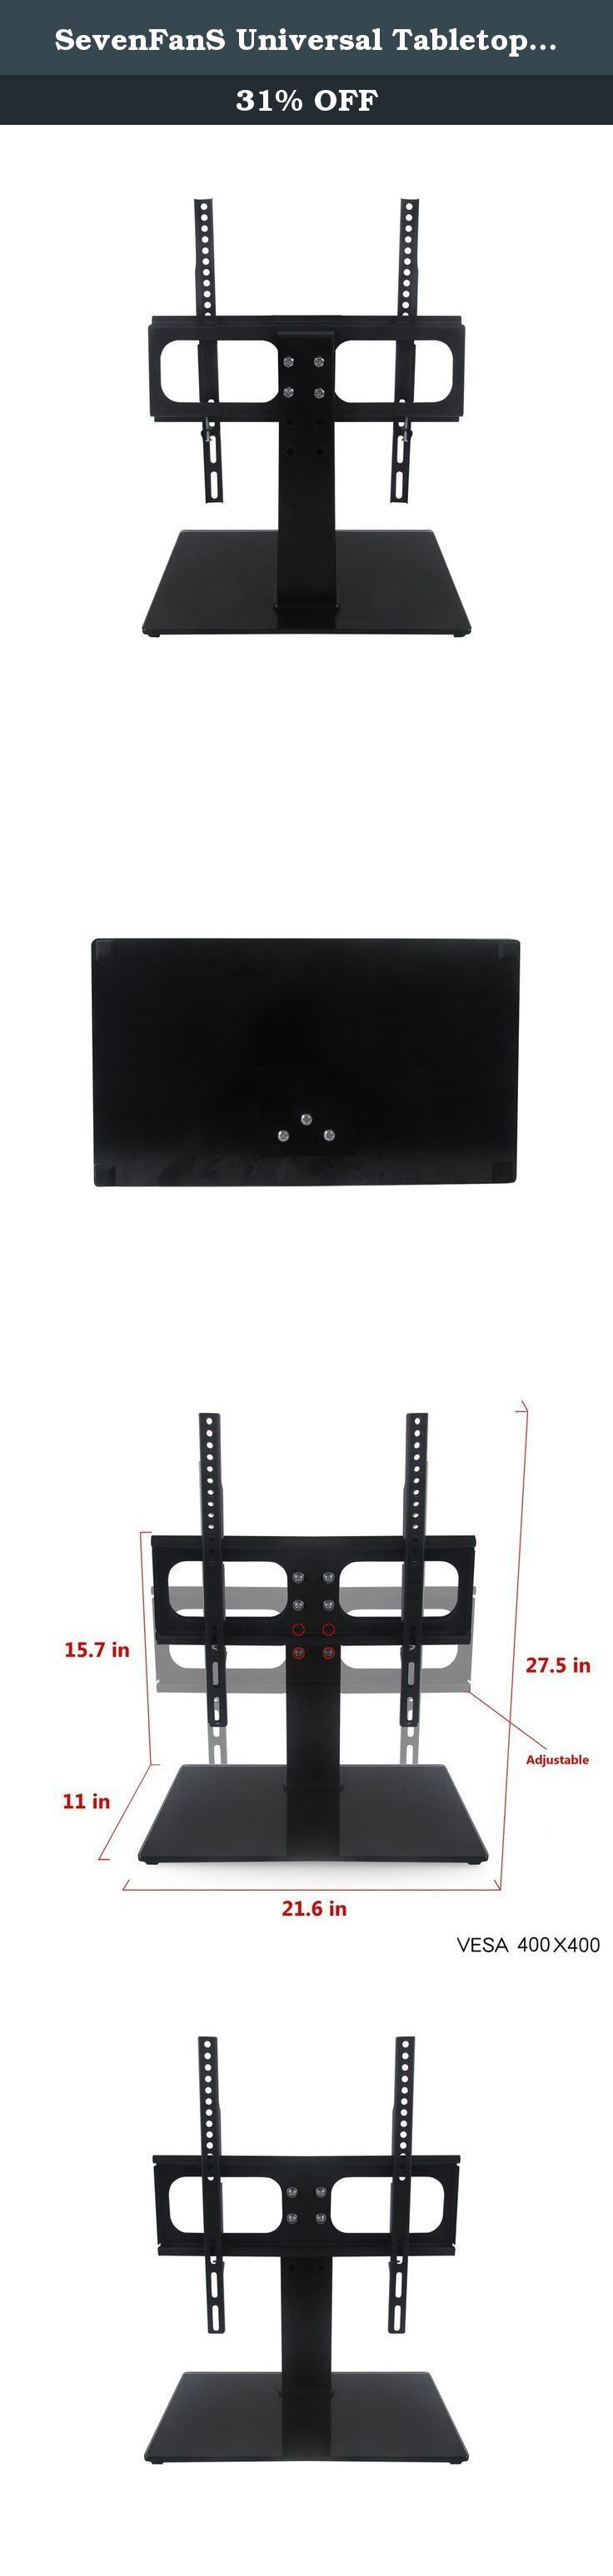 """SevenFanS Universal Tabletop TV Stand/Tv mount stand with Height adjustment, LED television support screen small TV stand rack VESA 400x400, suitable for TV up to 40"""". SevenFanS Universal Tabletop TV Stand/Tv mount stand help you make your video/audio nice looking. 8mm black tempered glass base with strong steel upright can be loading 77lbs. Height adjustable can help you can find a prefect height for your TV watching. Glass size 21.65""""*11"""" the mount VESA from 100*100mm to 600*400mm, it..."""